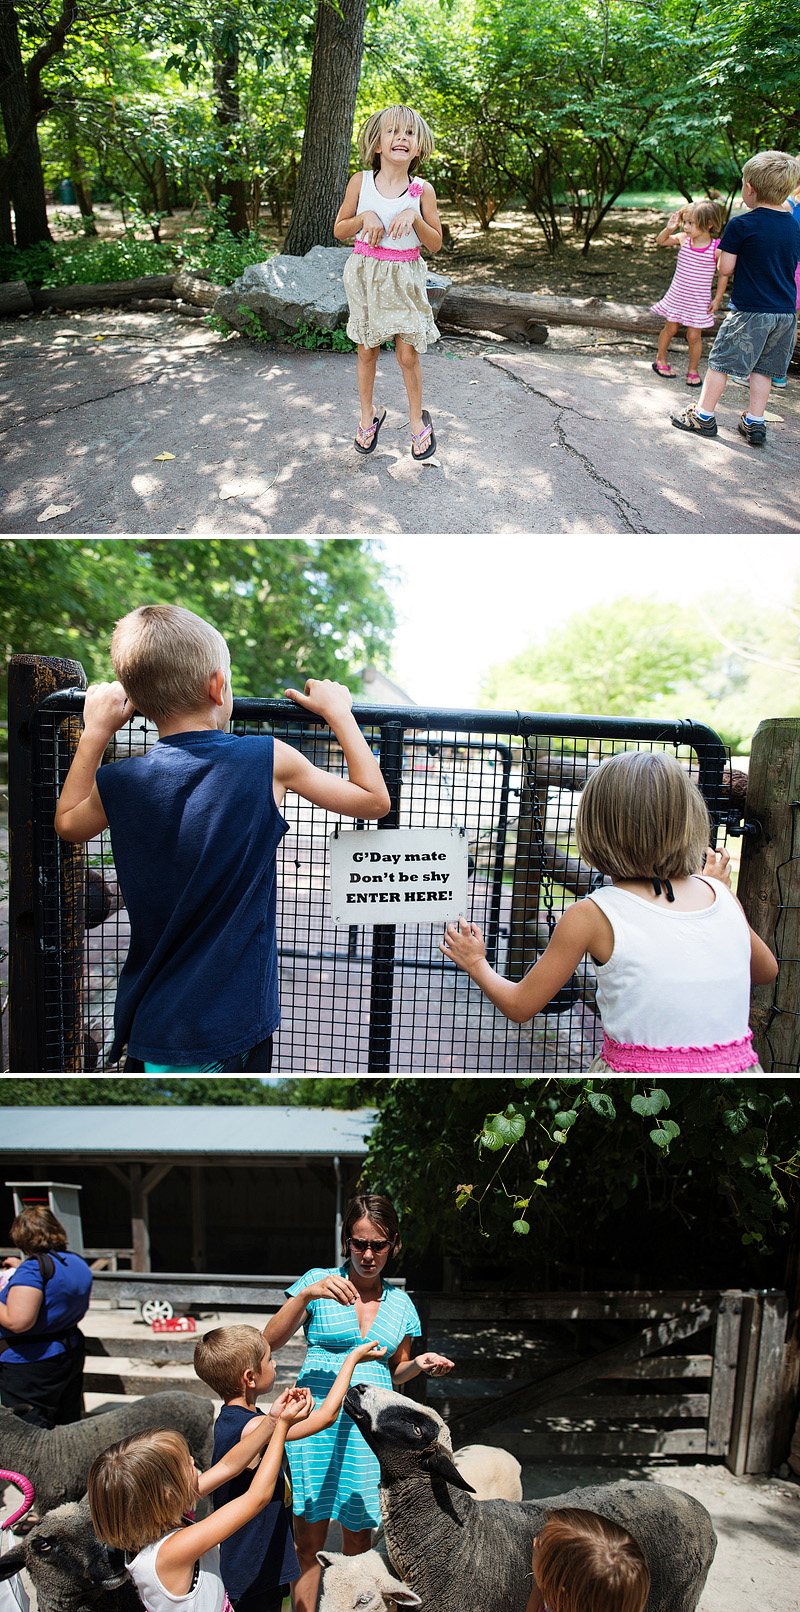 kids feeding the sheep at the zoo